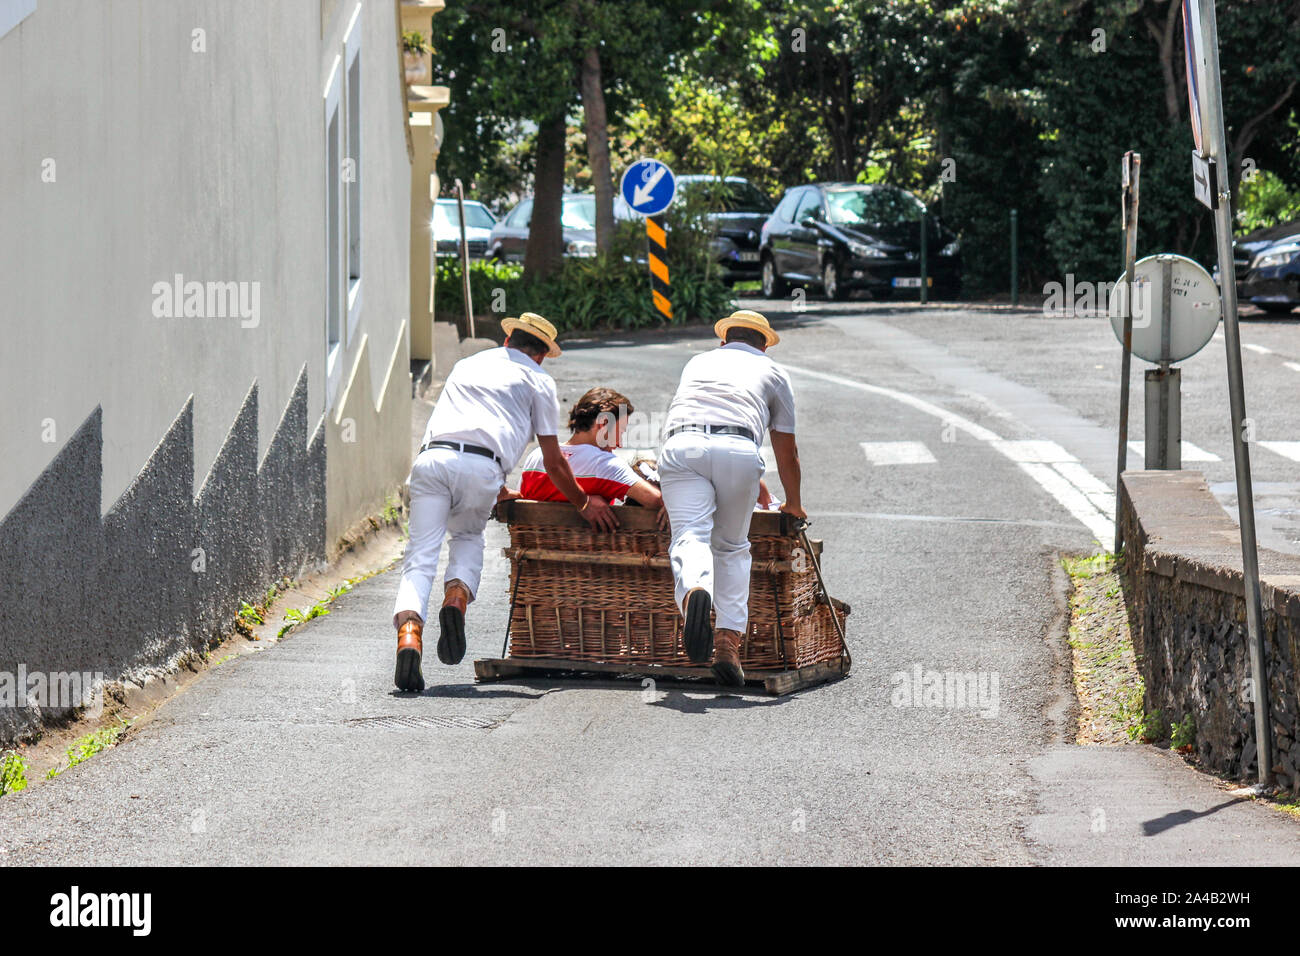 Monte, Madeira, Portugal - Sep 14, 2019: Toboggan ride with Carreiros do Monte. Traditional mean of transport, now a tourist attraction. People riding downhill with drivers. Wicker basket sled. Stock Photo